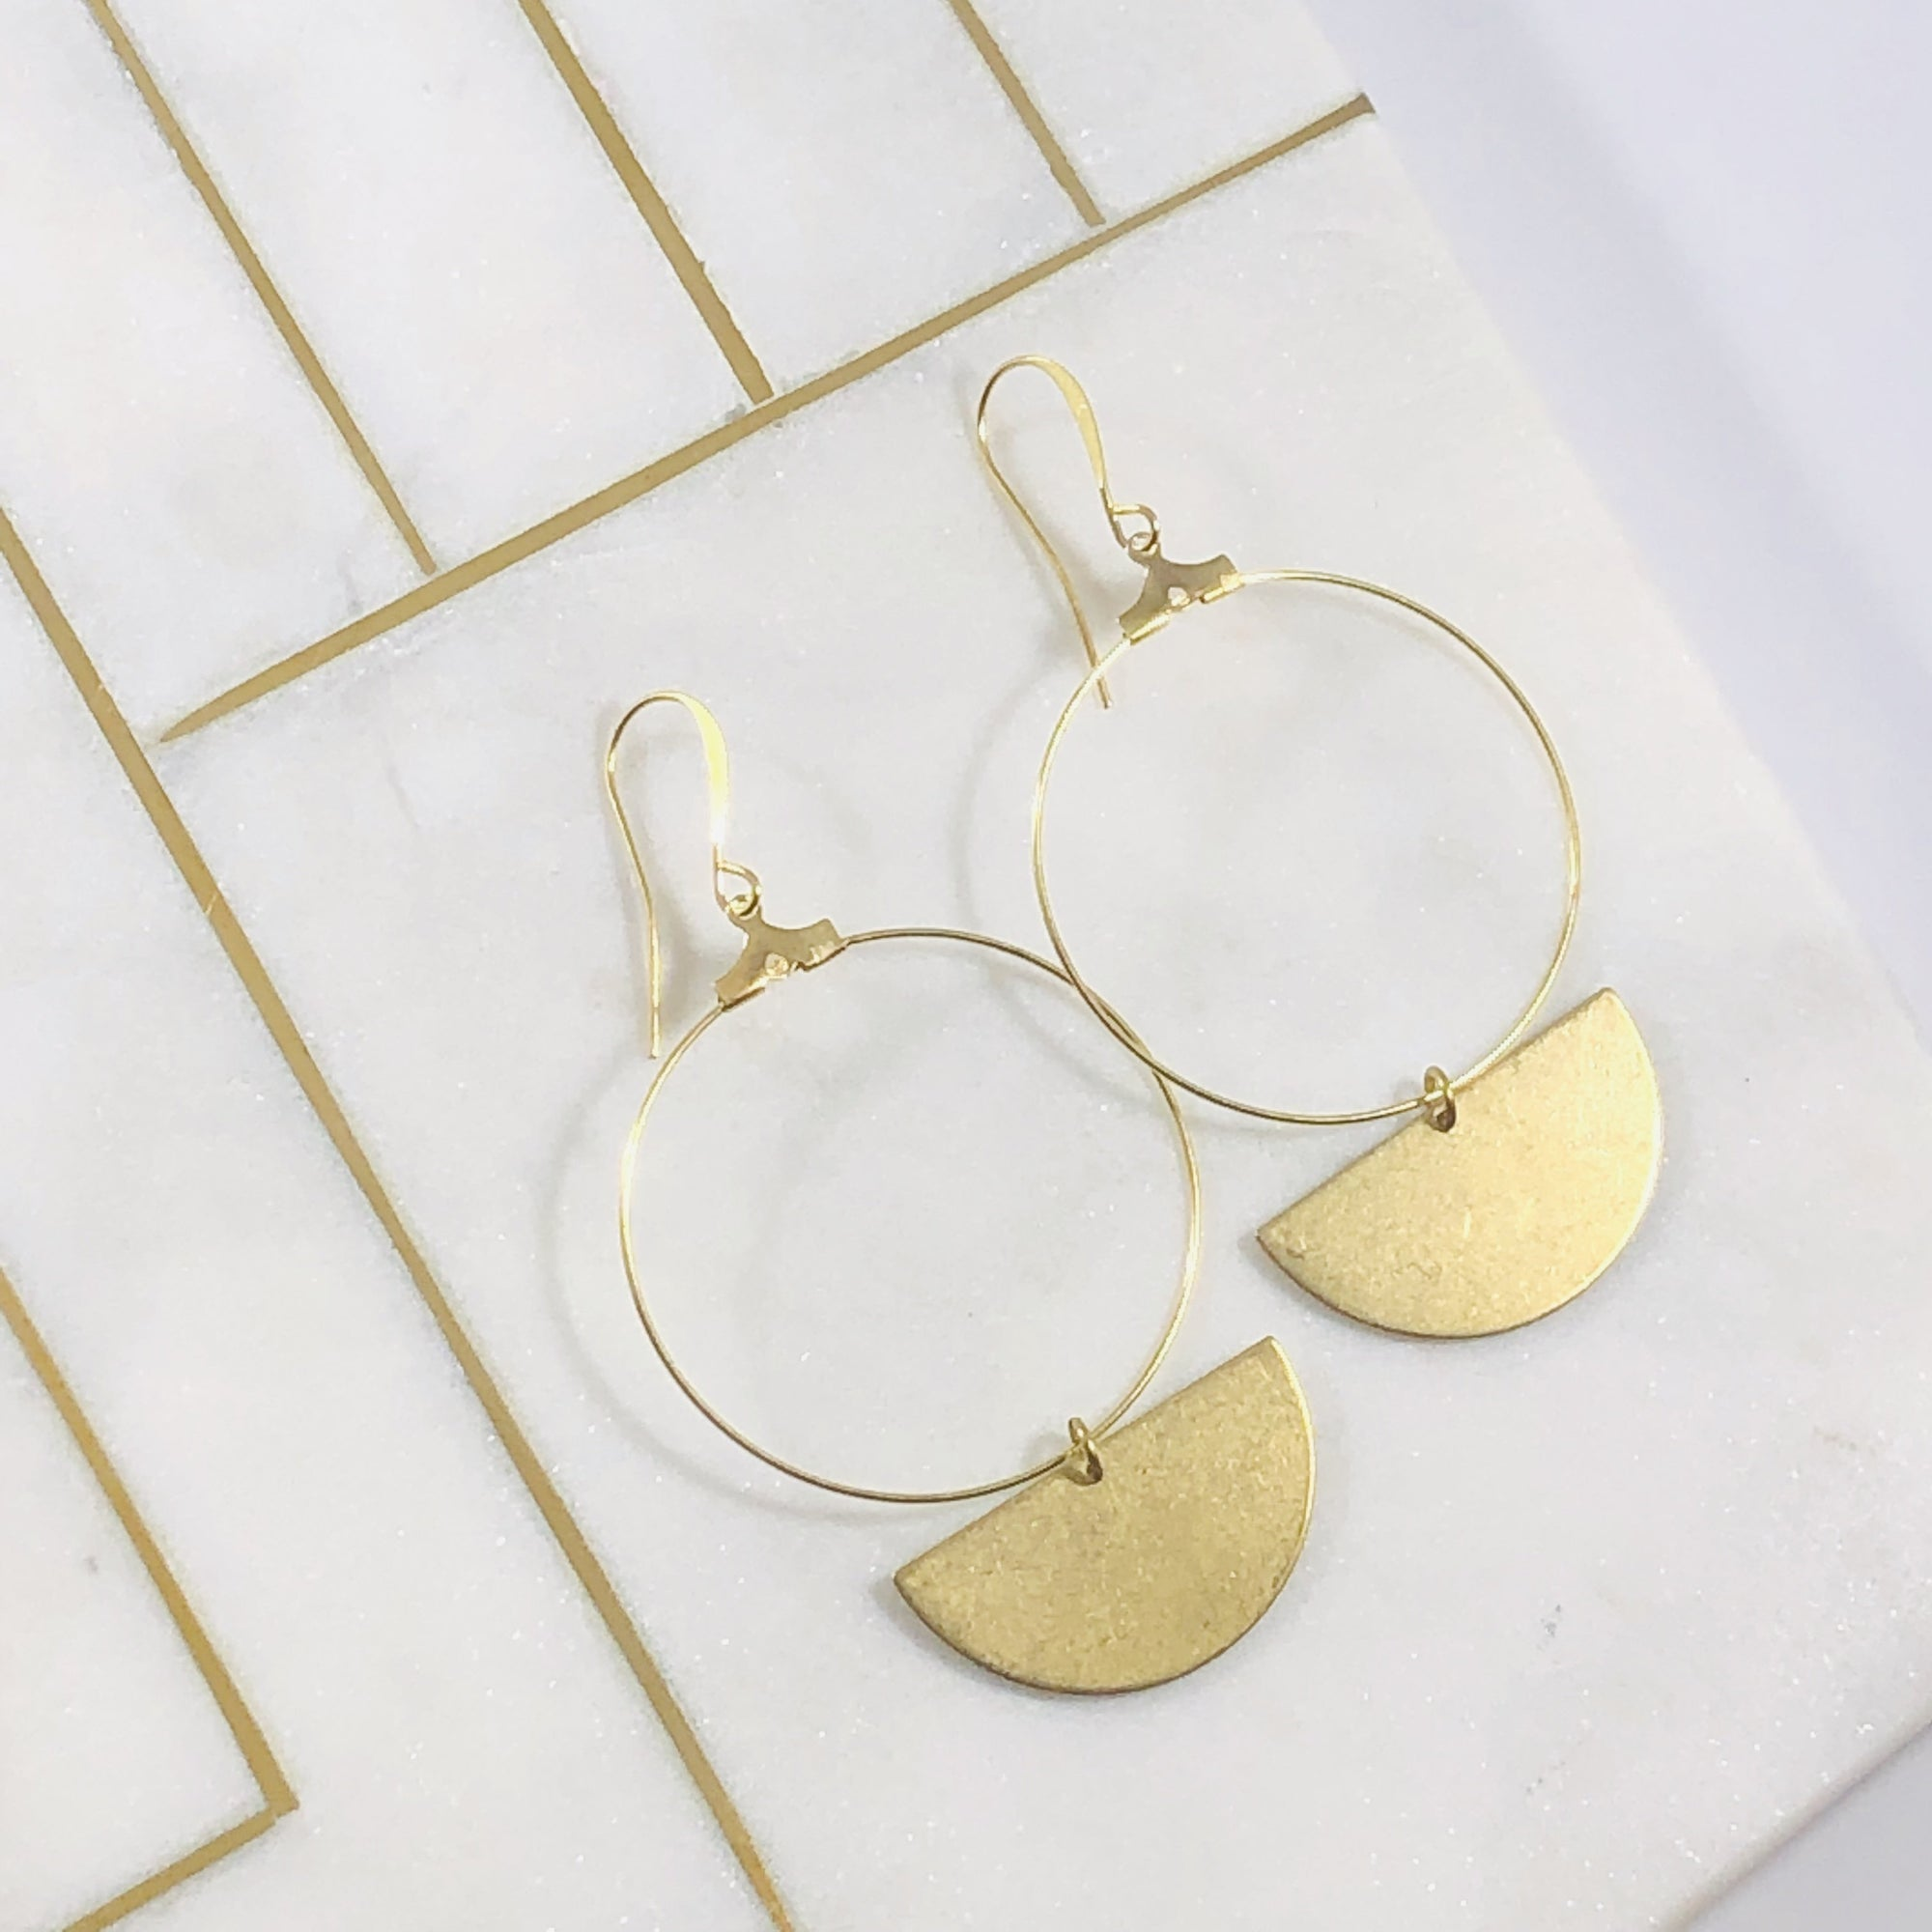 Handmade gold hoop earrings that make a modern minimalist statement